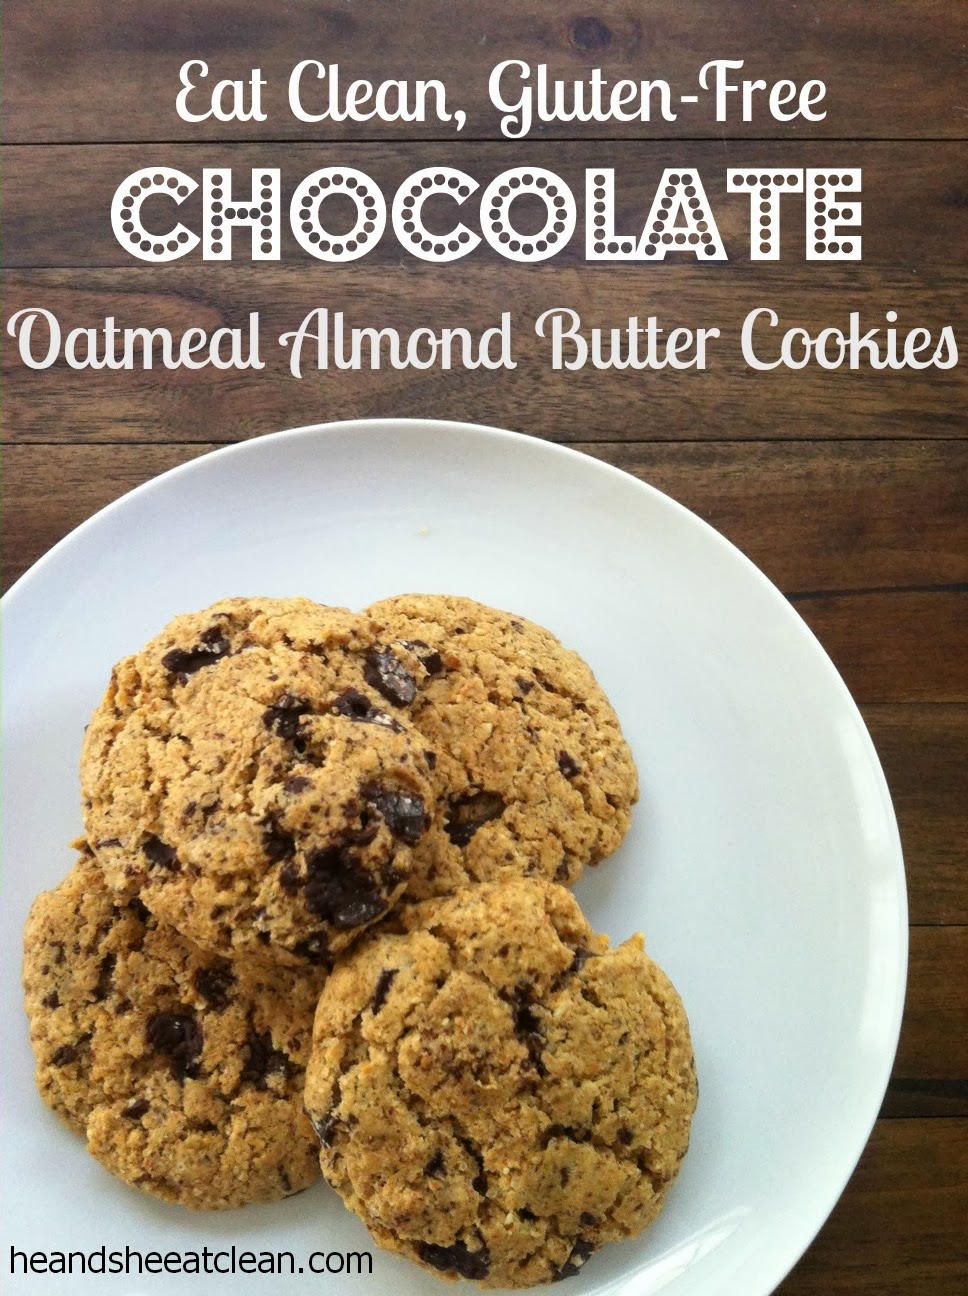 eating-gluten-free-chocolate-chip-oatmeal-almond-butter-cookies-recipe-baking-he-she-eat-clean.jpg